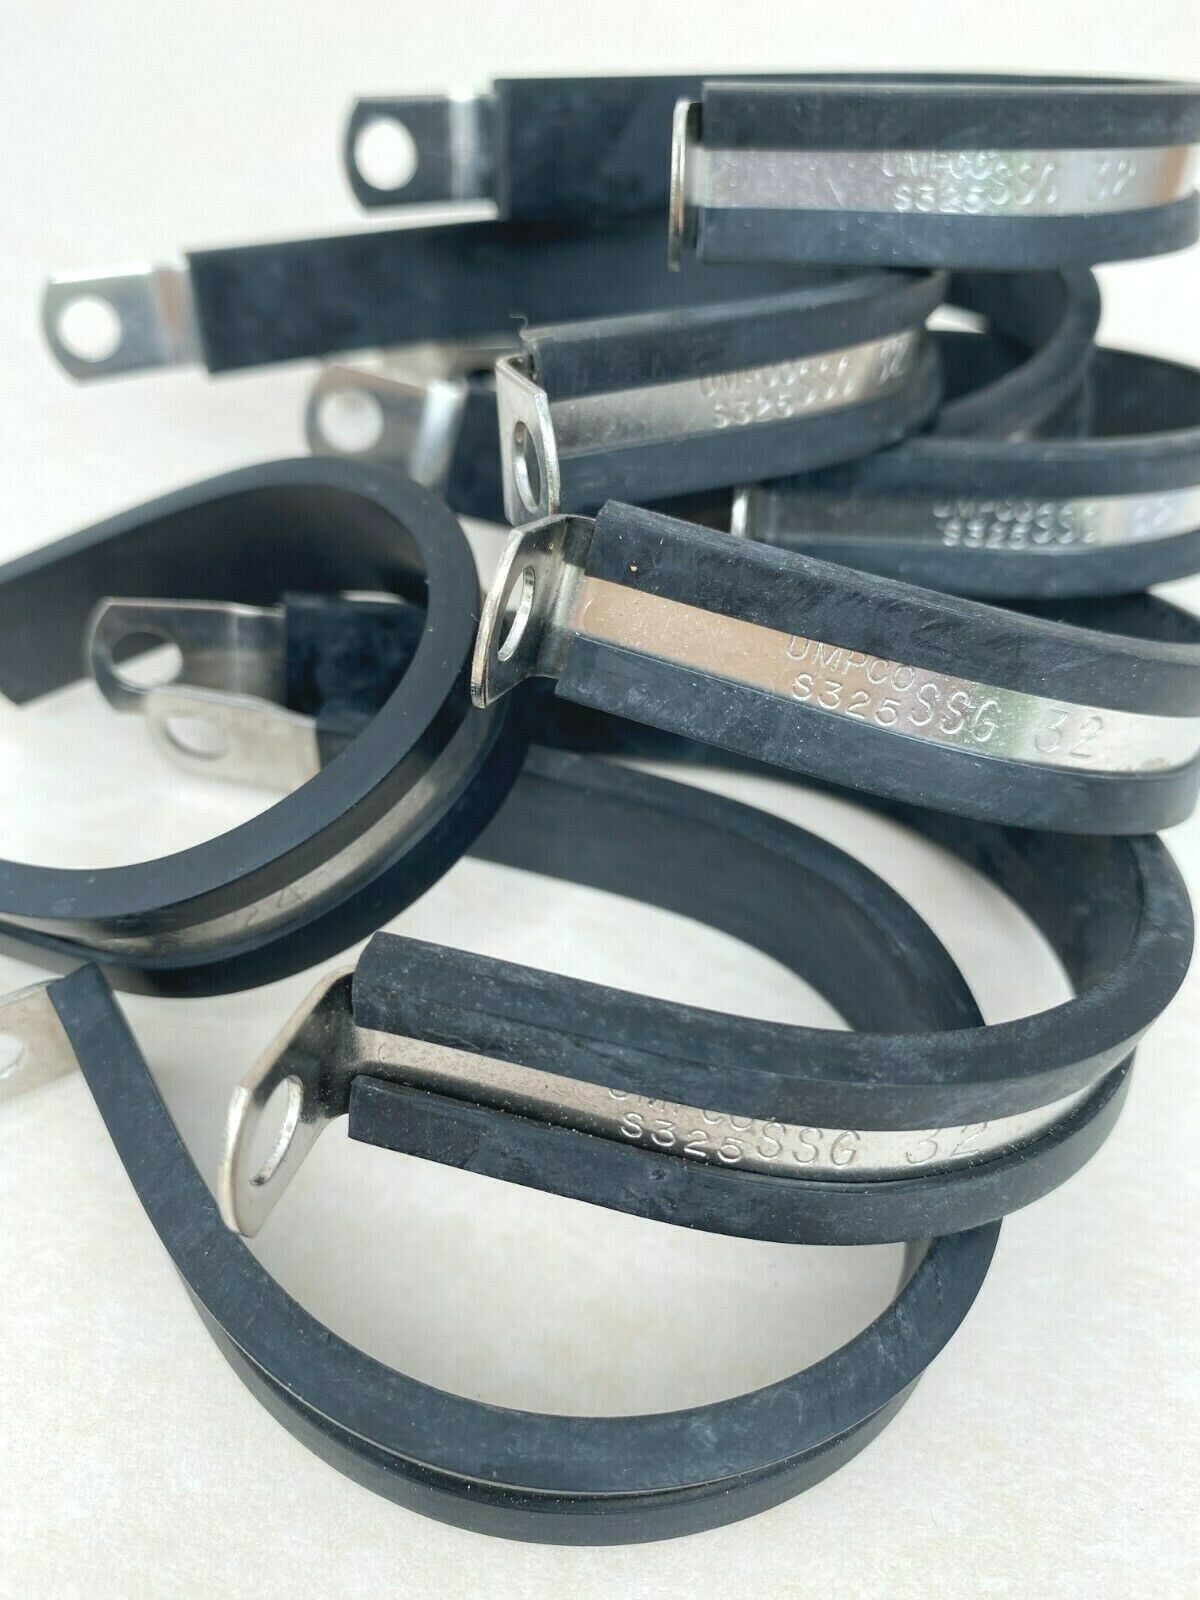 UMPCO Stainless Steel Cushioned Cable Clamp Lot 8PCS Business & Industrial